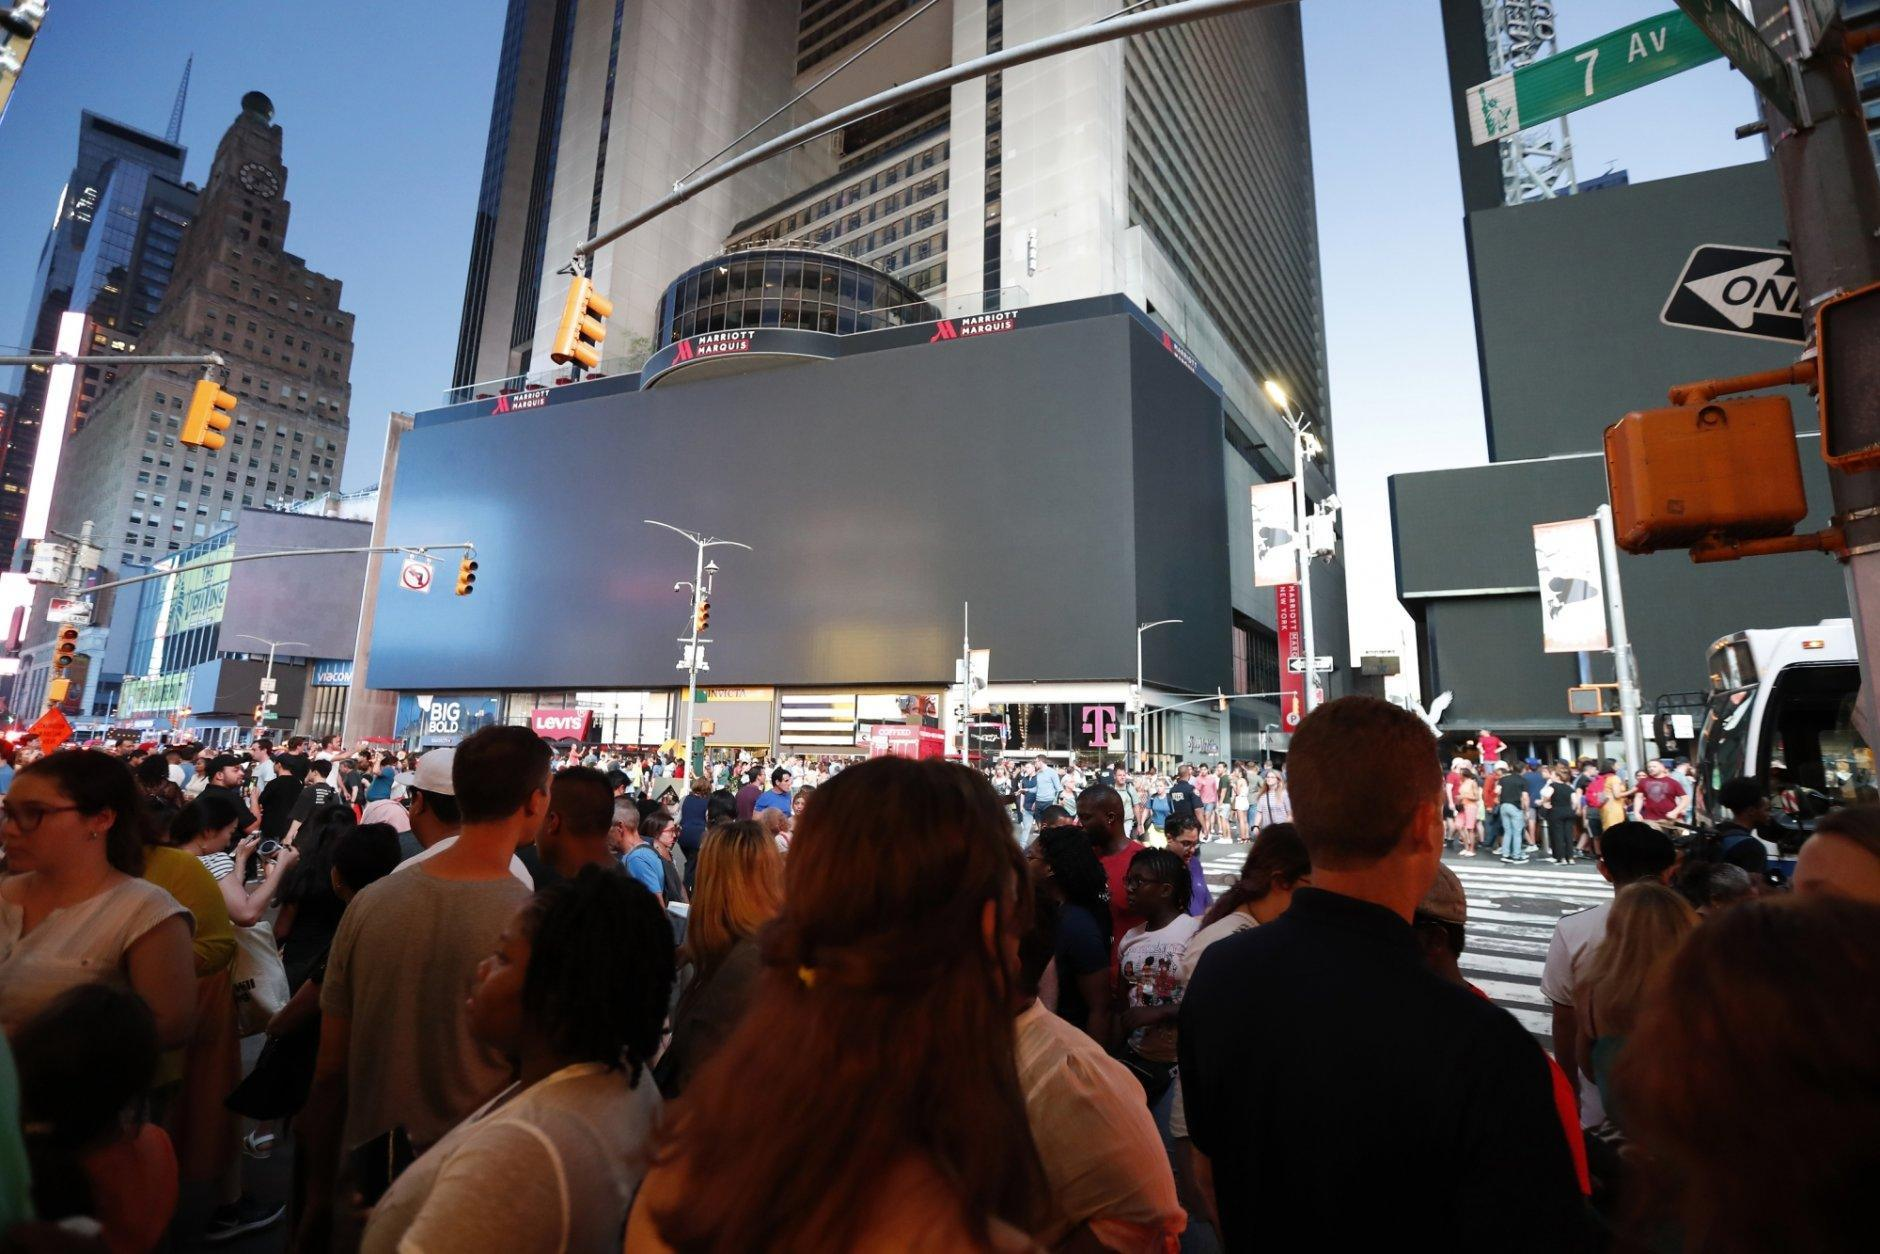 Screens in Time Square are black during a widespread power outage, Saturday, July 13, 2019, in the Manhattan borough of New York. Authorities say a transformer fire caused a power outage in Manhattan and left businesses without electricity, elevators stuck and subway cars stalled. (AP Photo/Michael Owens)